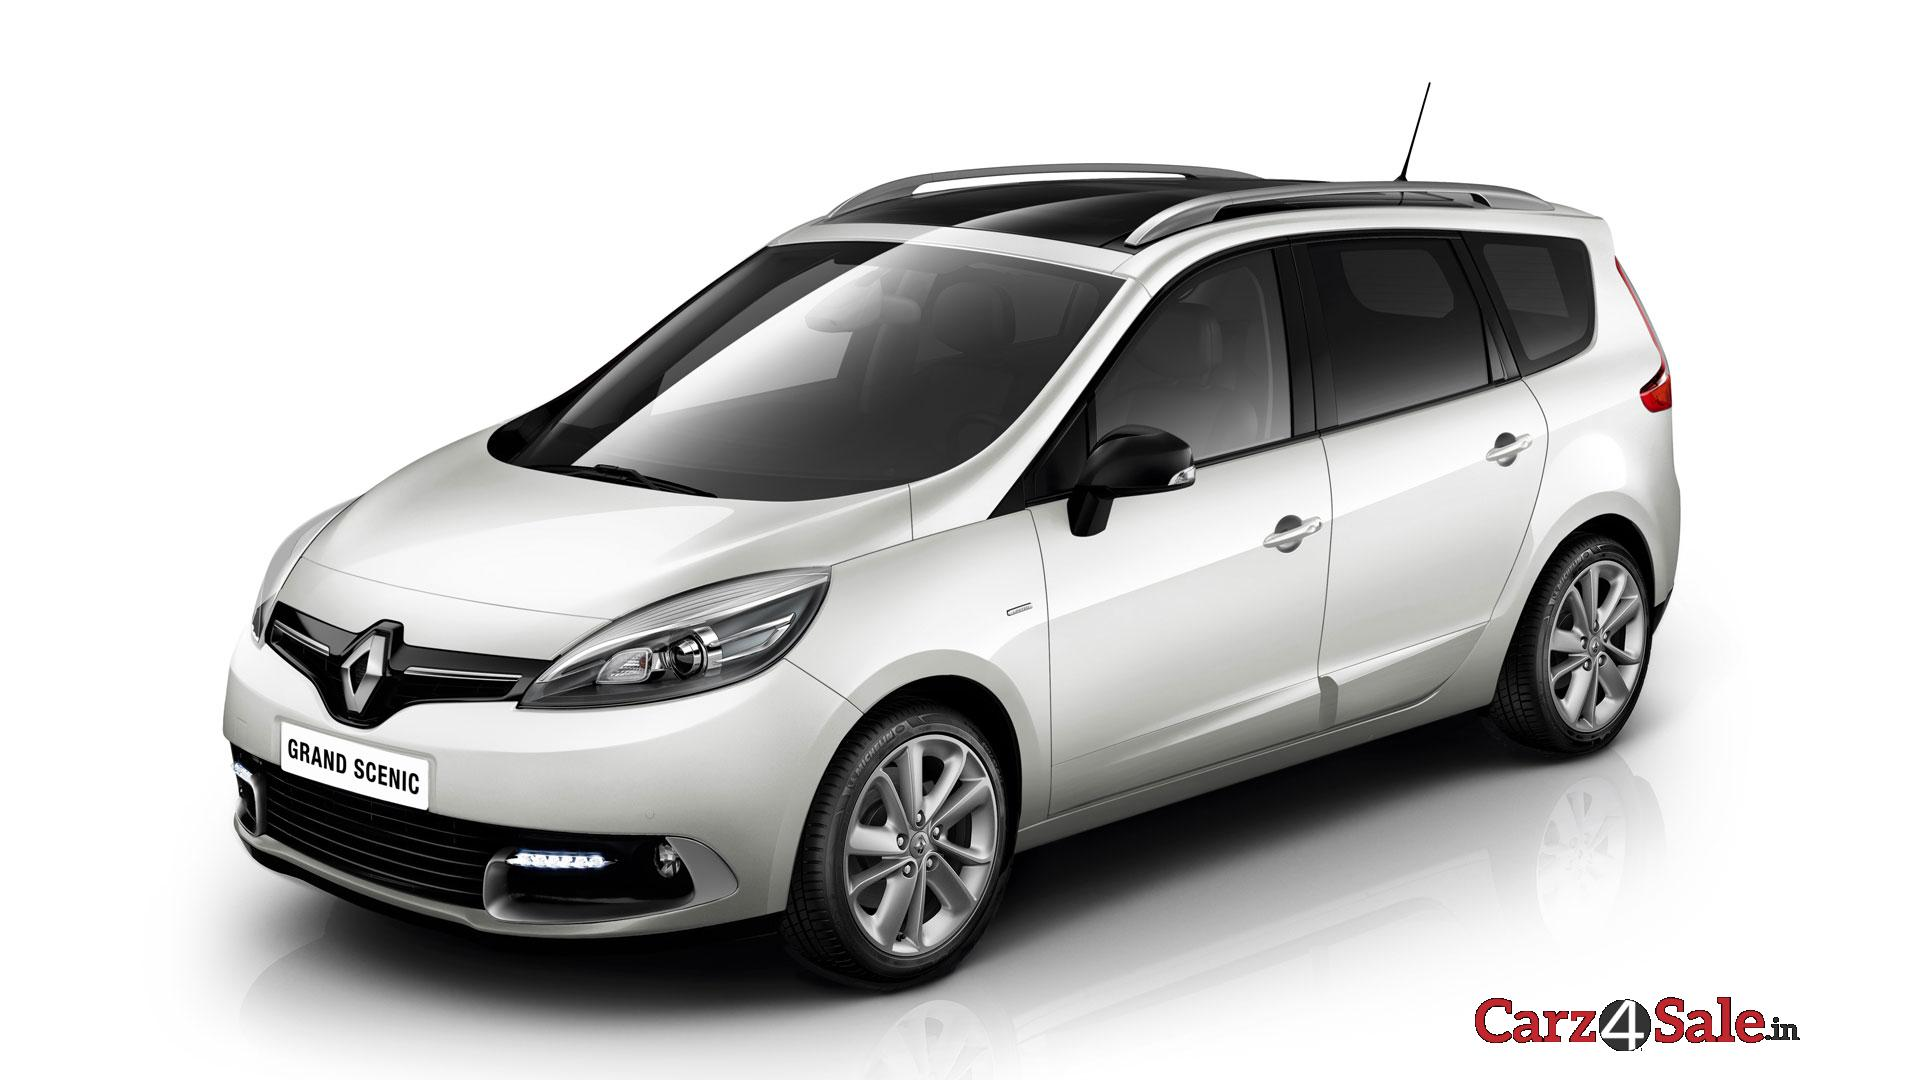 renault grand scenic dynamique tomtom 1 6 vvt 110 specifications features colours mileage. Black Bedroom Furniture Sets. Home Design Ideas